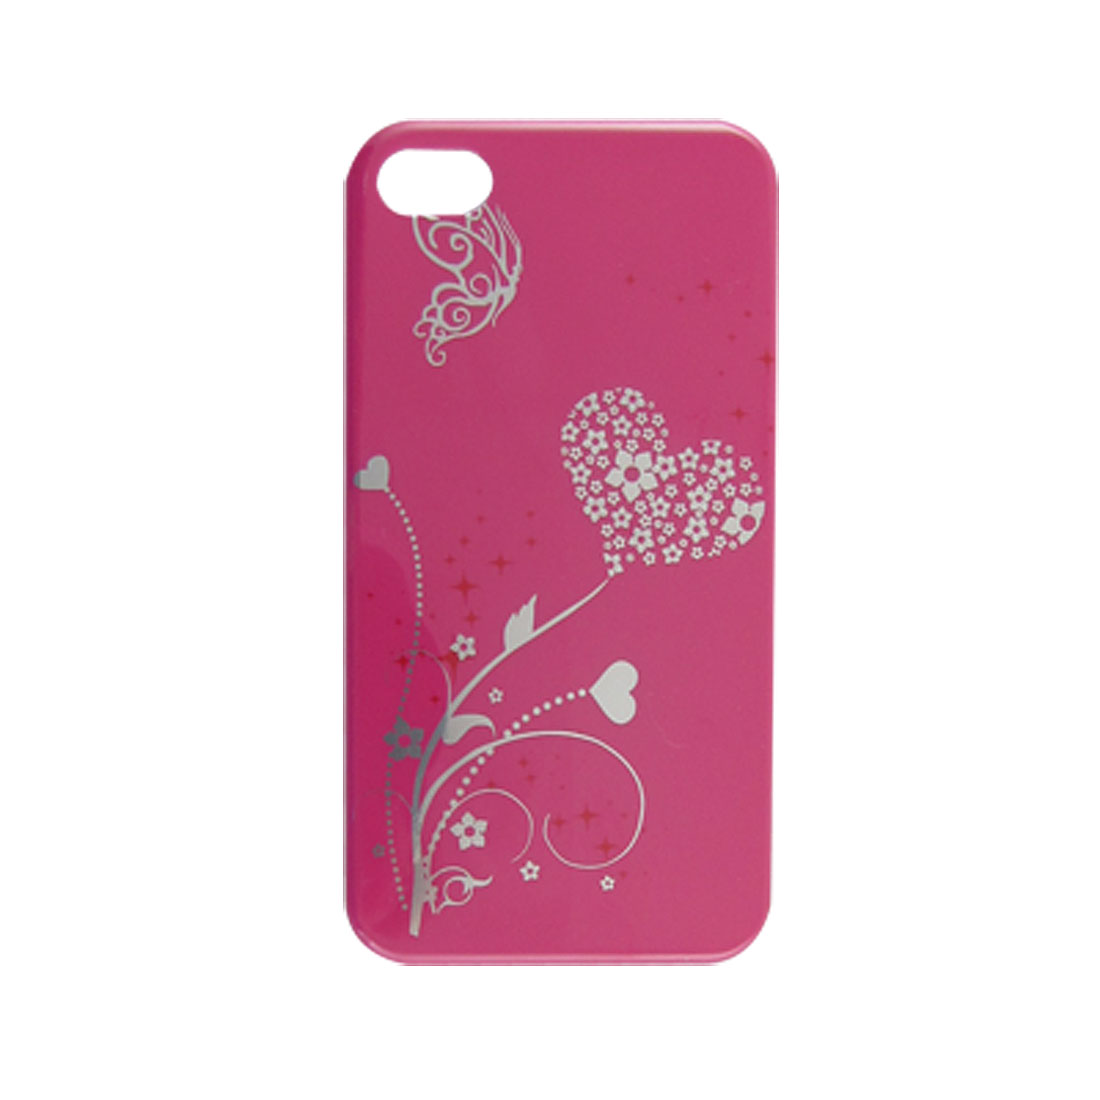 Fuchsia Silver Tone IMD Floral Hard Plastic Shell Cover for iPhone 4 4G 4S